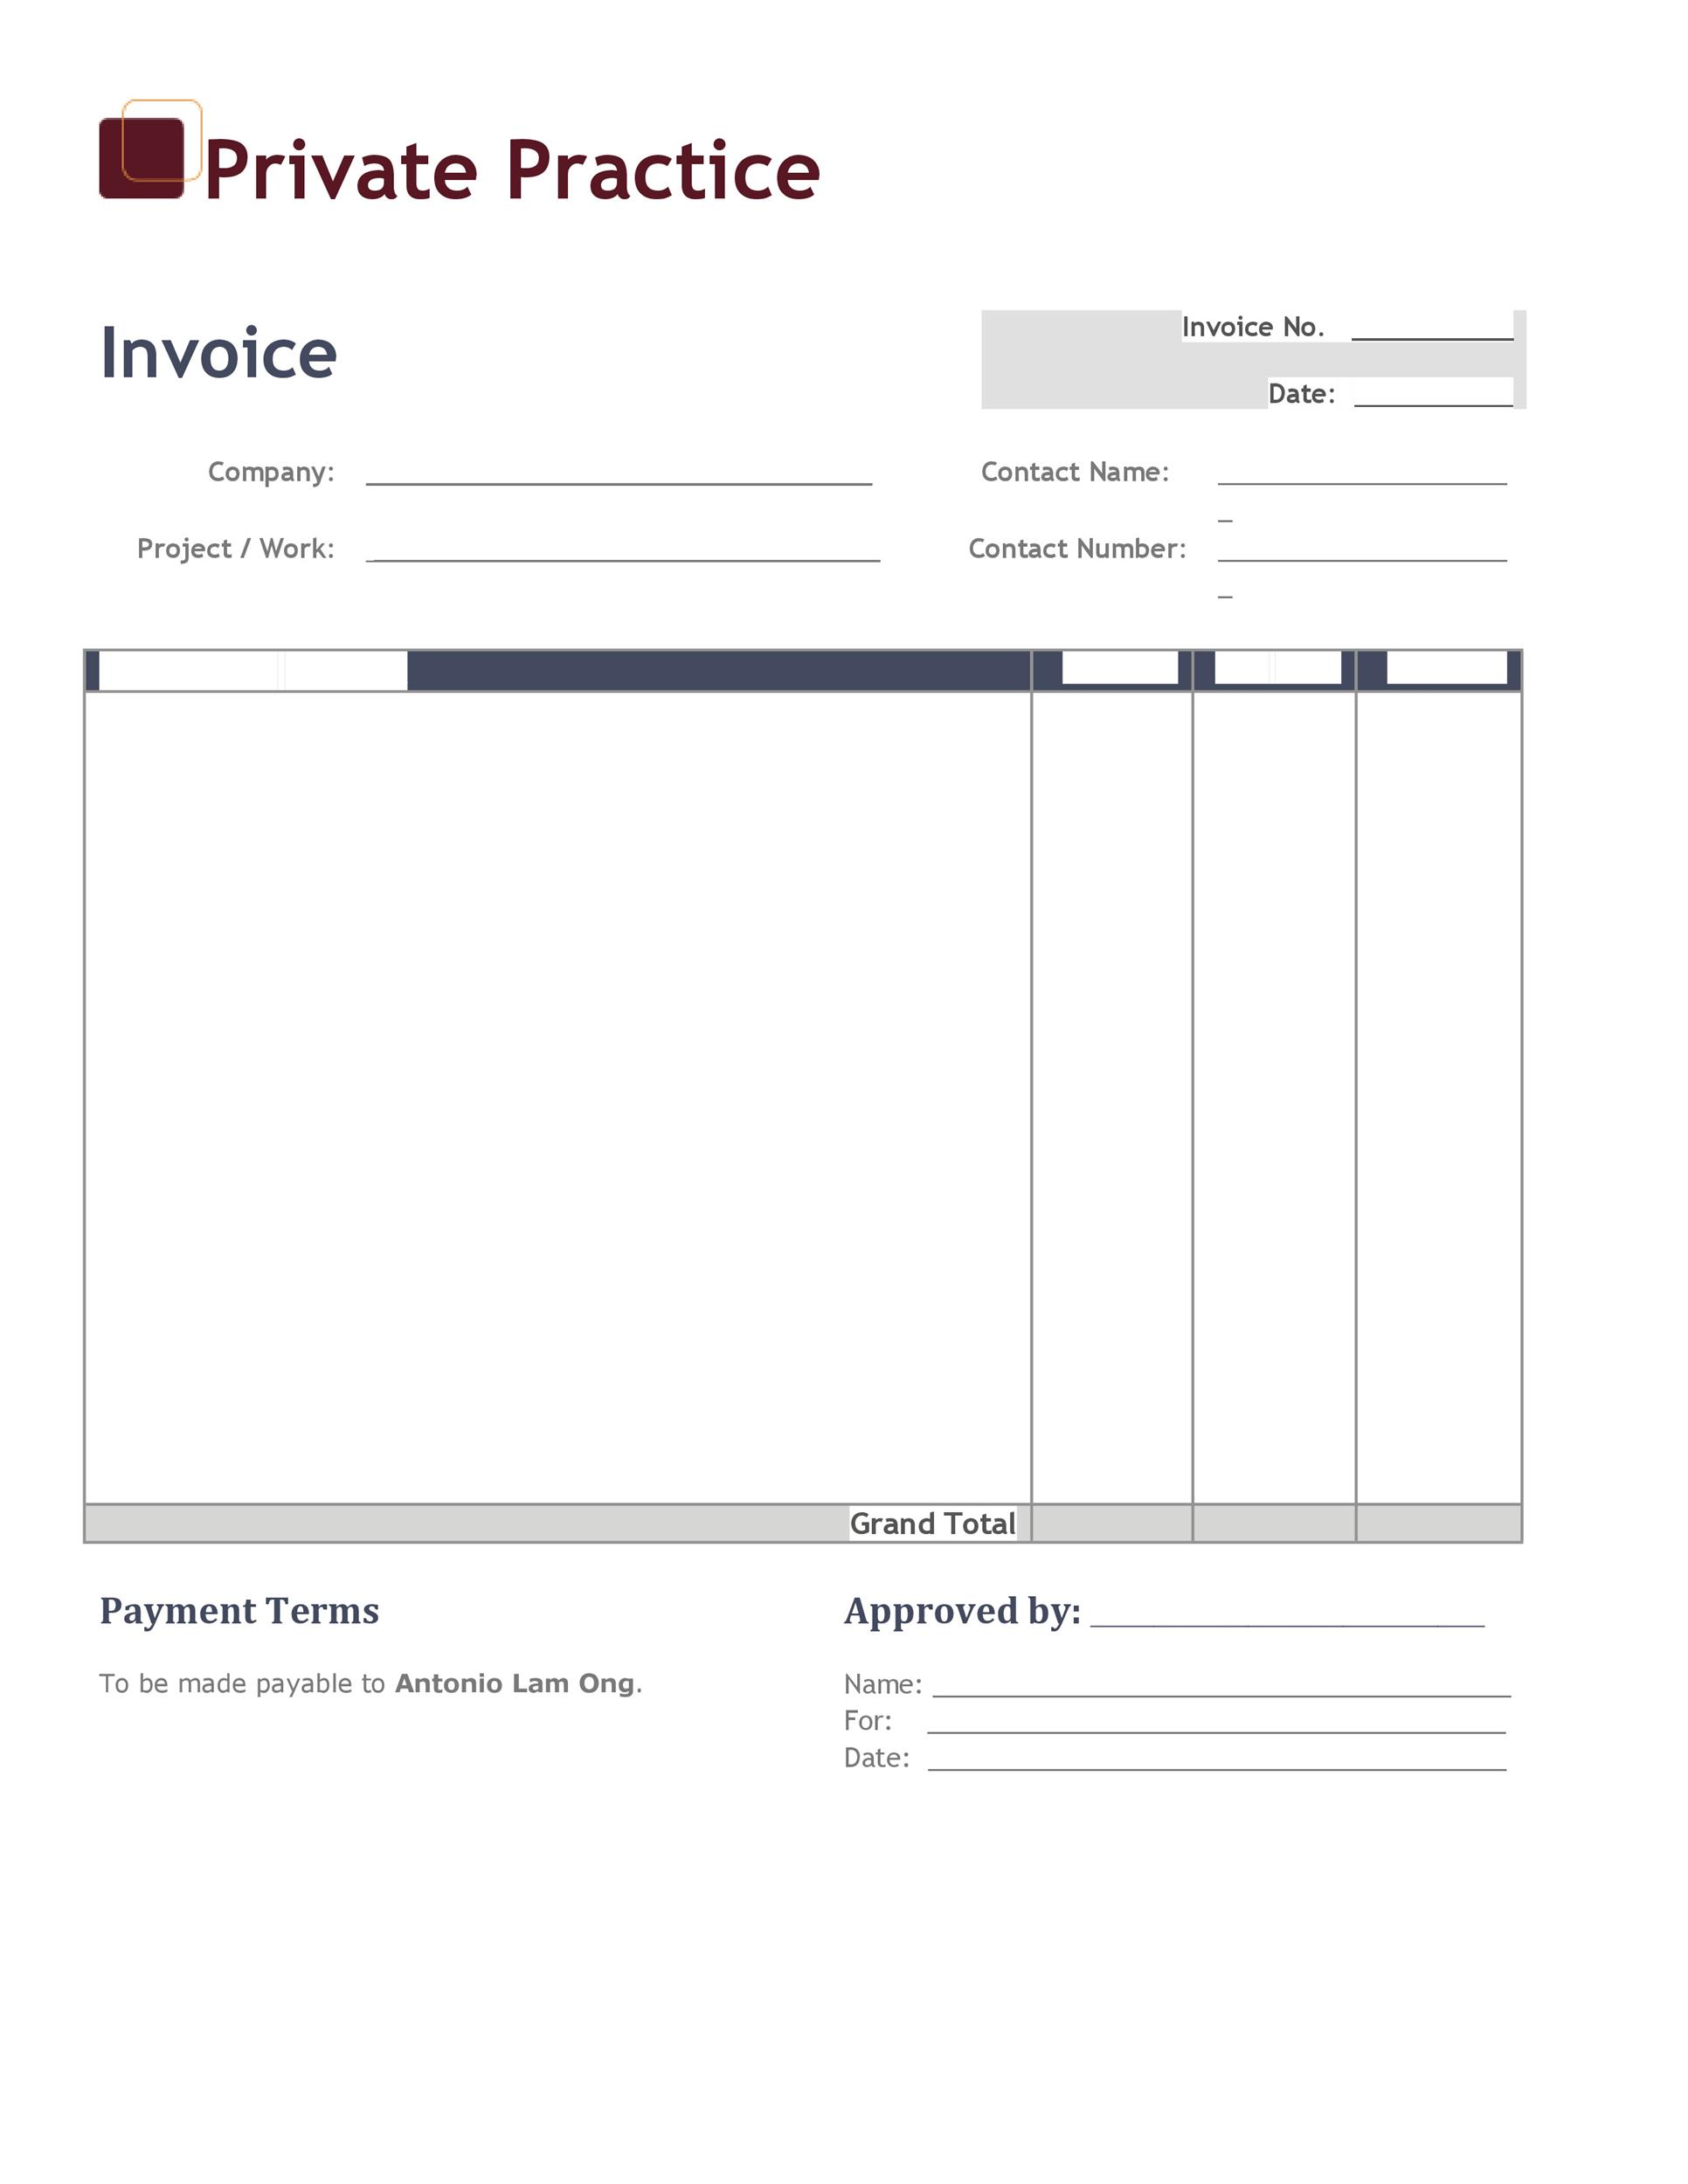 Invoice Templates Blank Commercial PDF Word Excel - Free printable invoices templates blank for service business